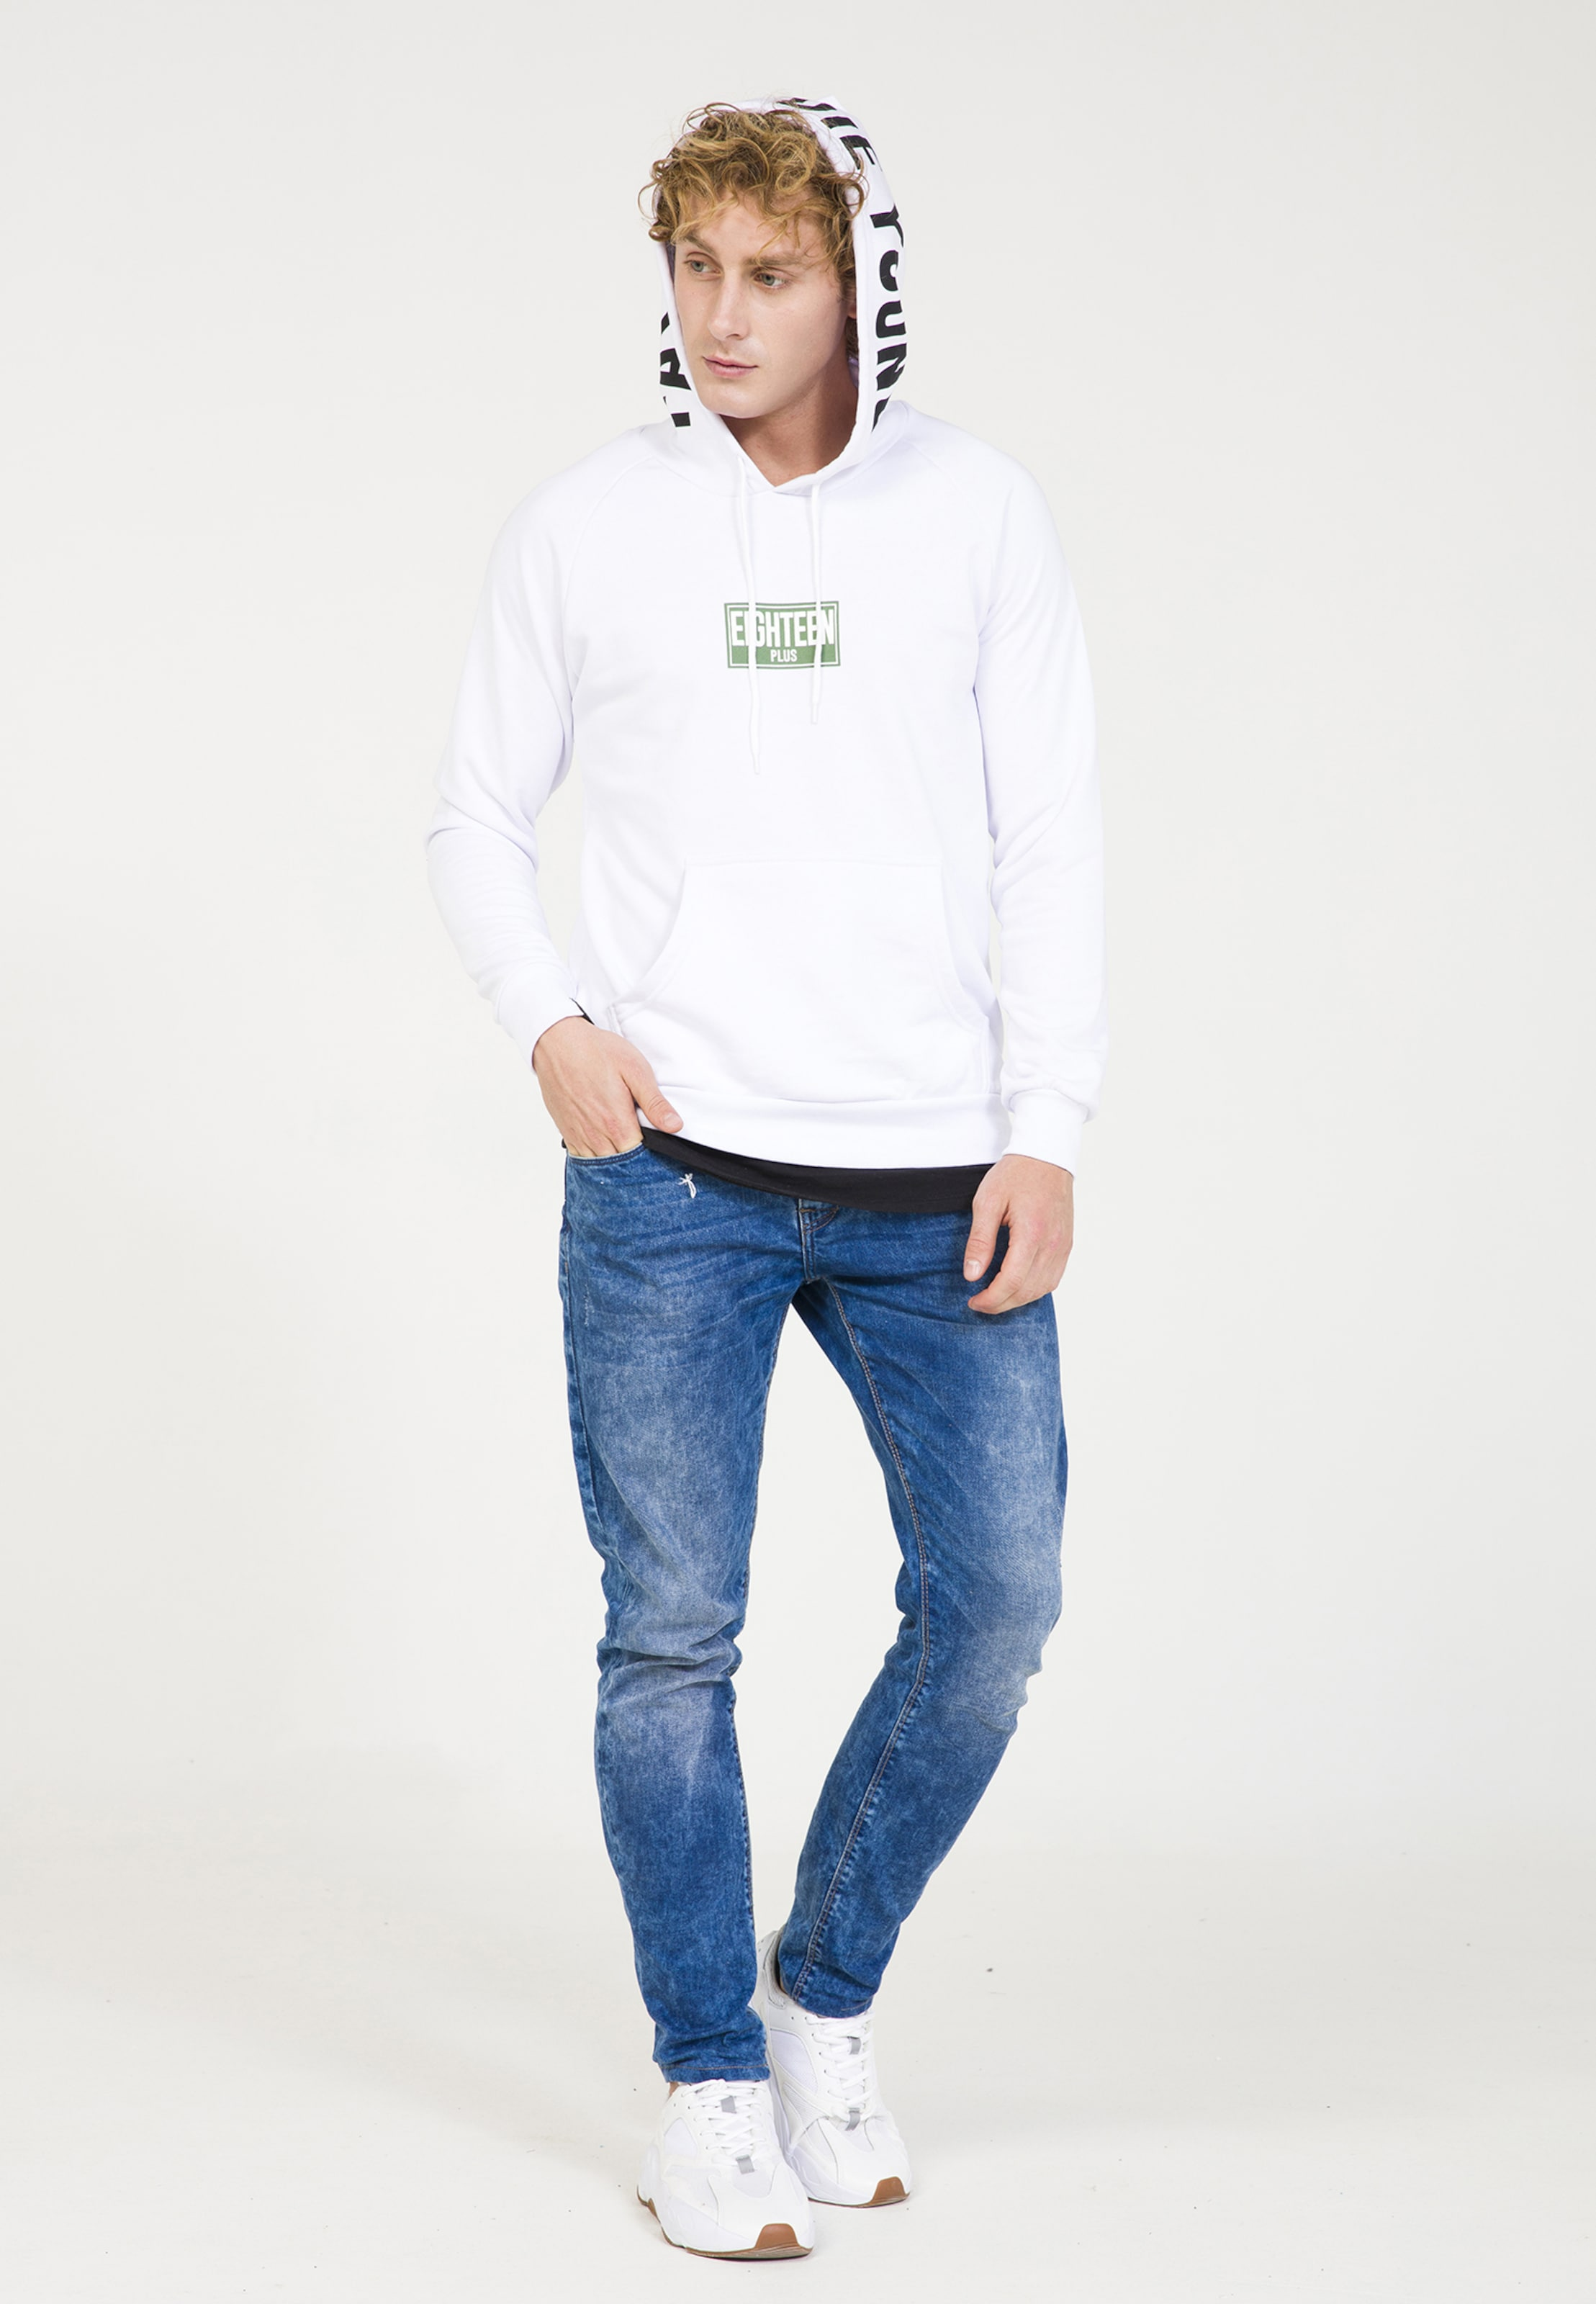 Blanc Eighteen En Sweat shirt Plus vNO8wmn0